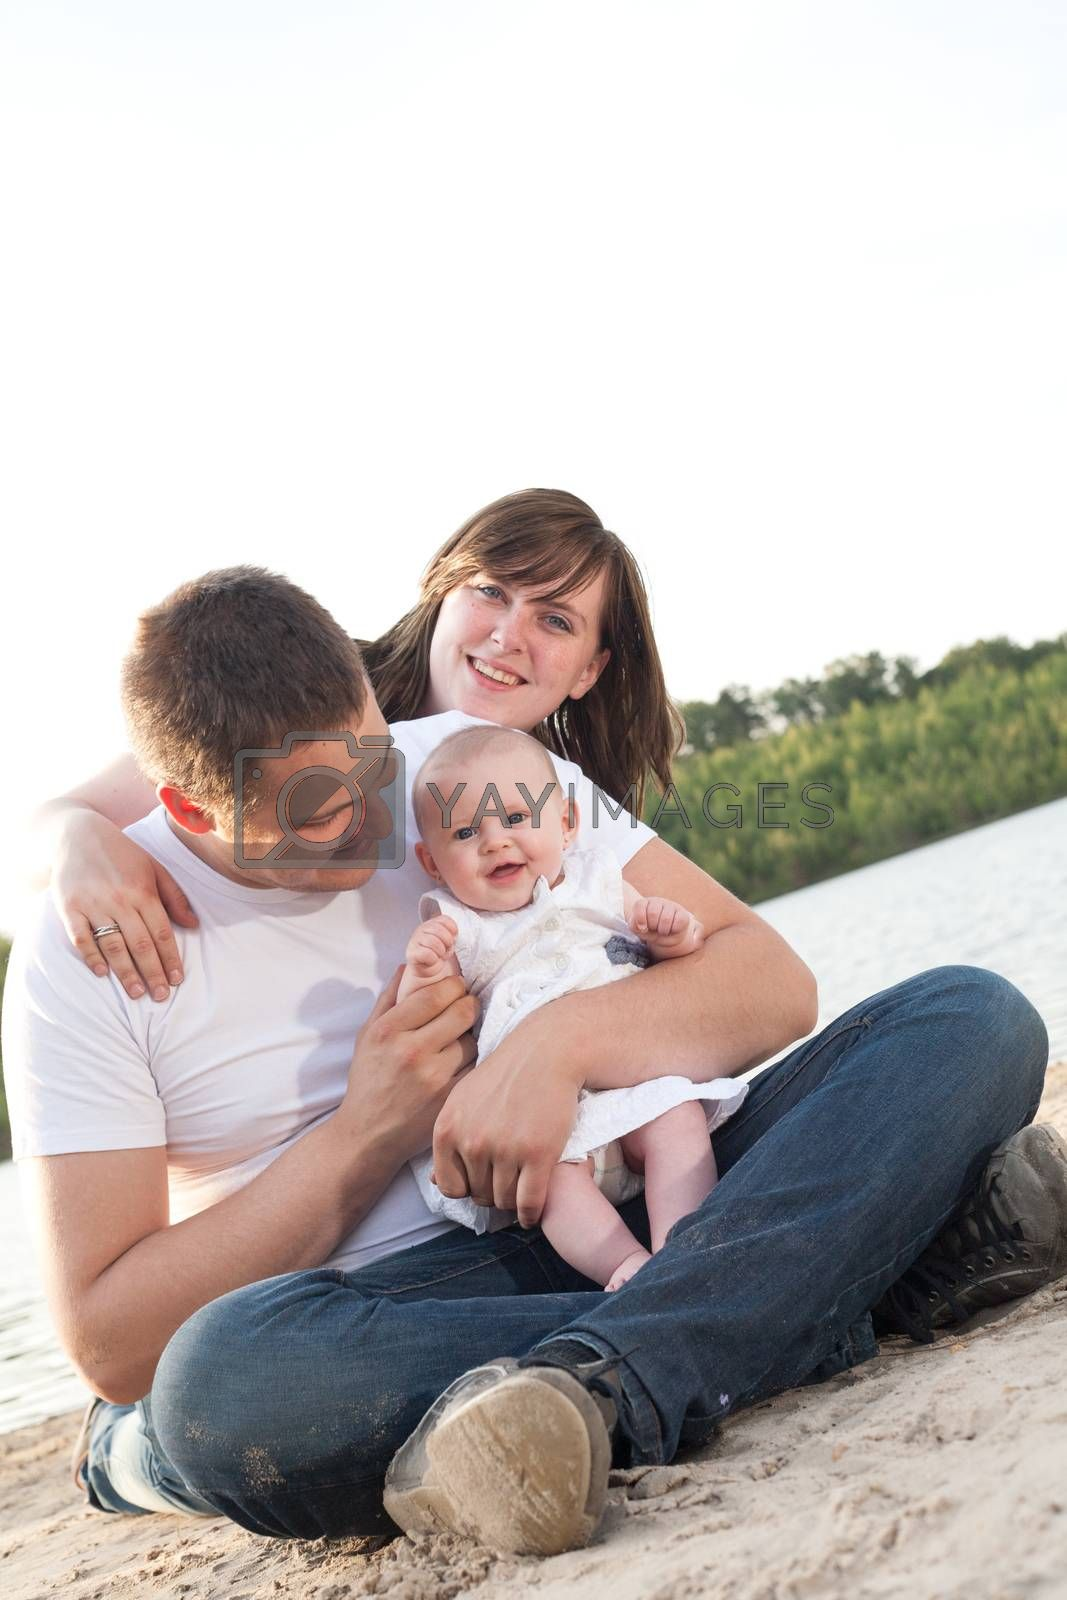 Happy family day by DNFStyle